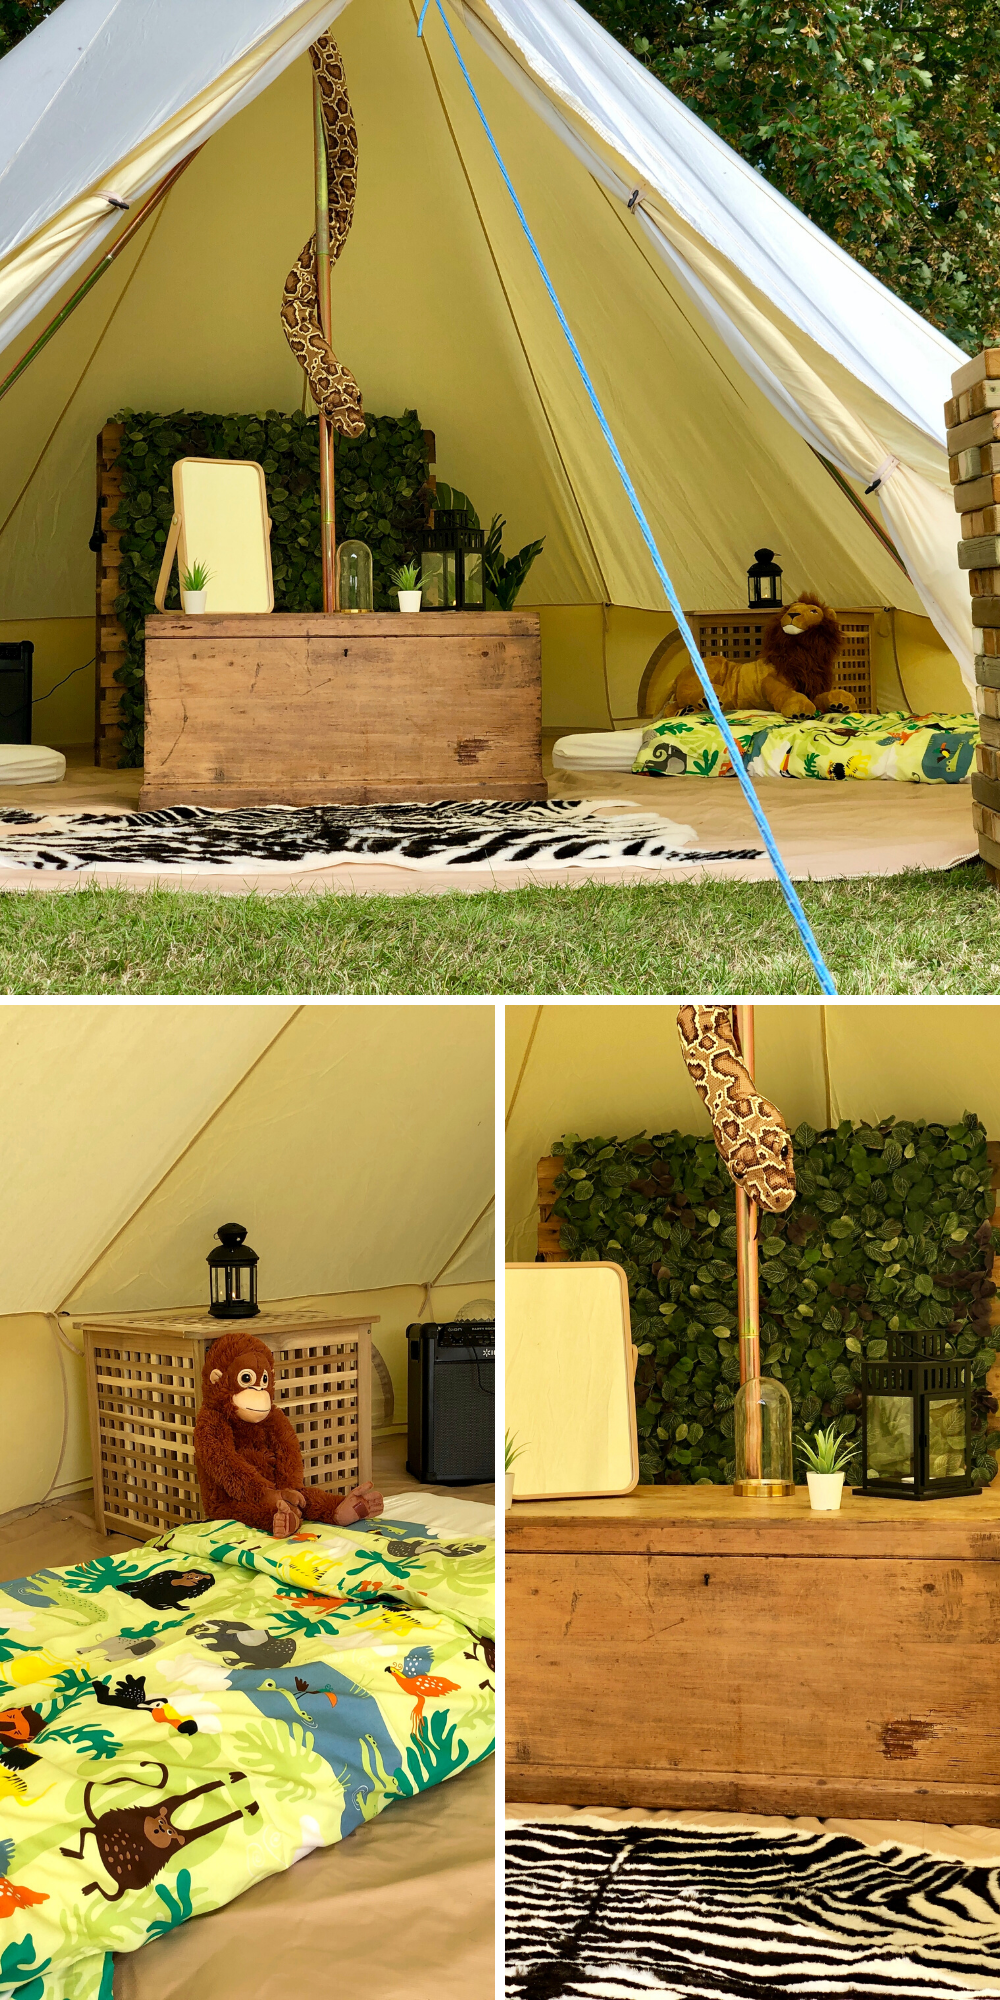 Party tents and events services